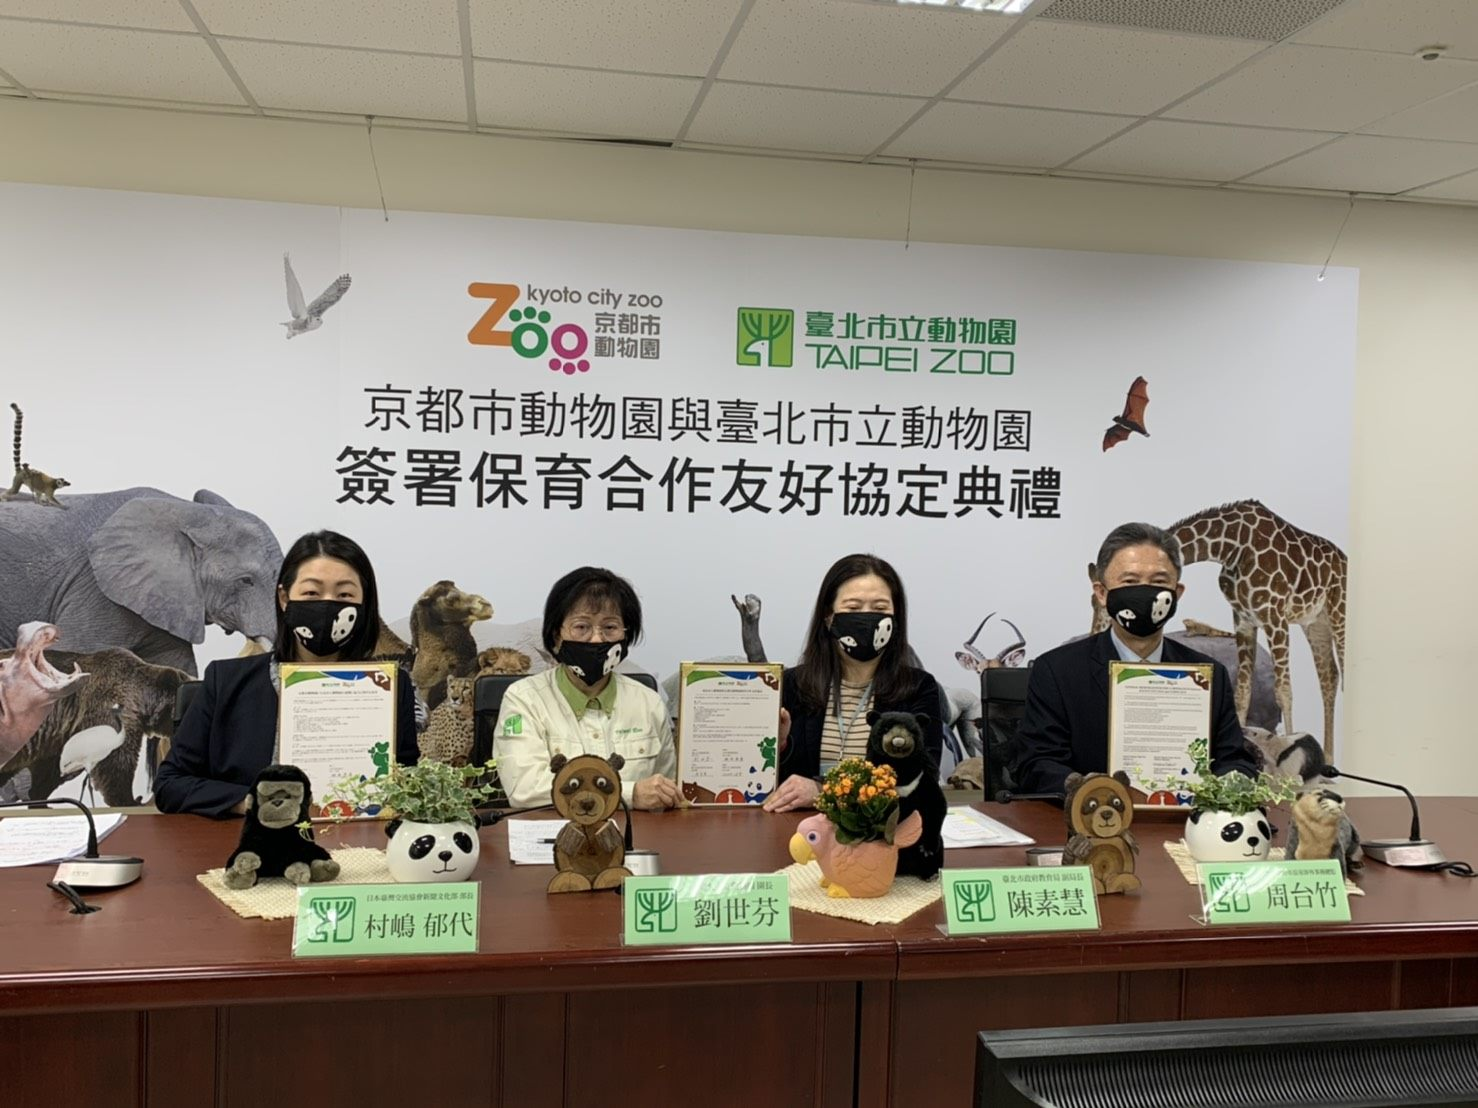 Officials at the signing ceremony for friendship agreement between Taipei Zoo and Kyoto City Zoo